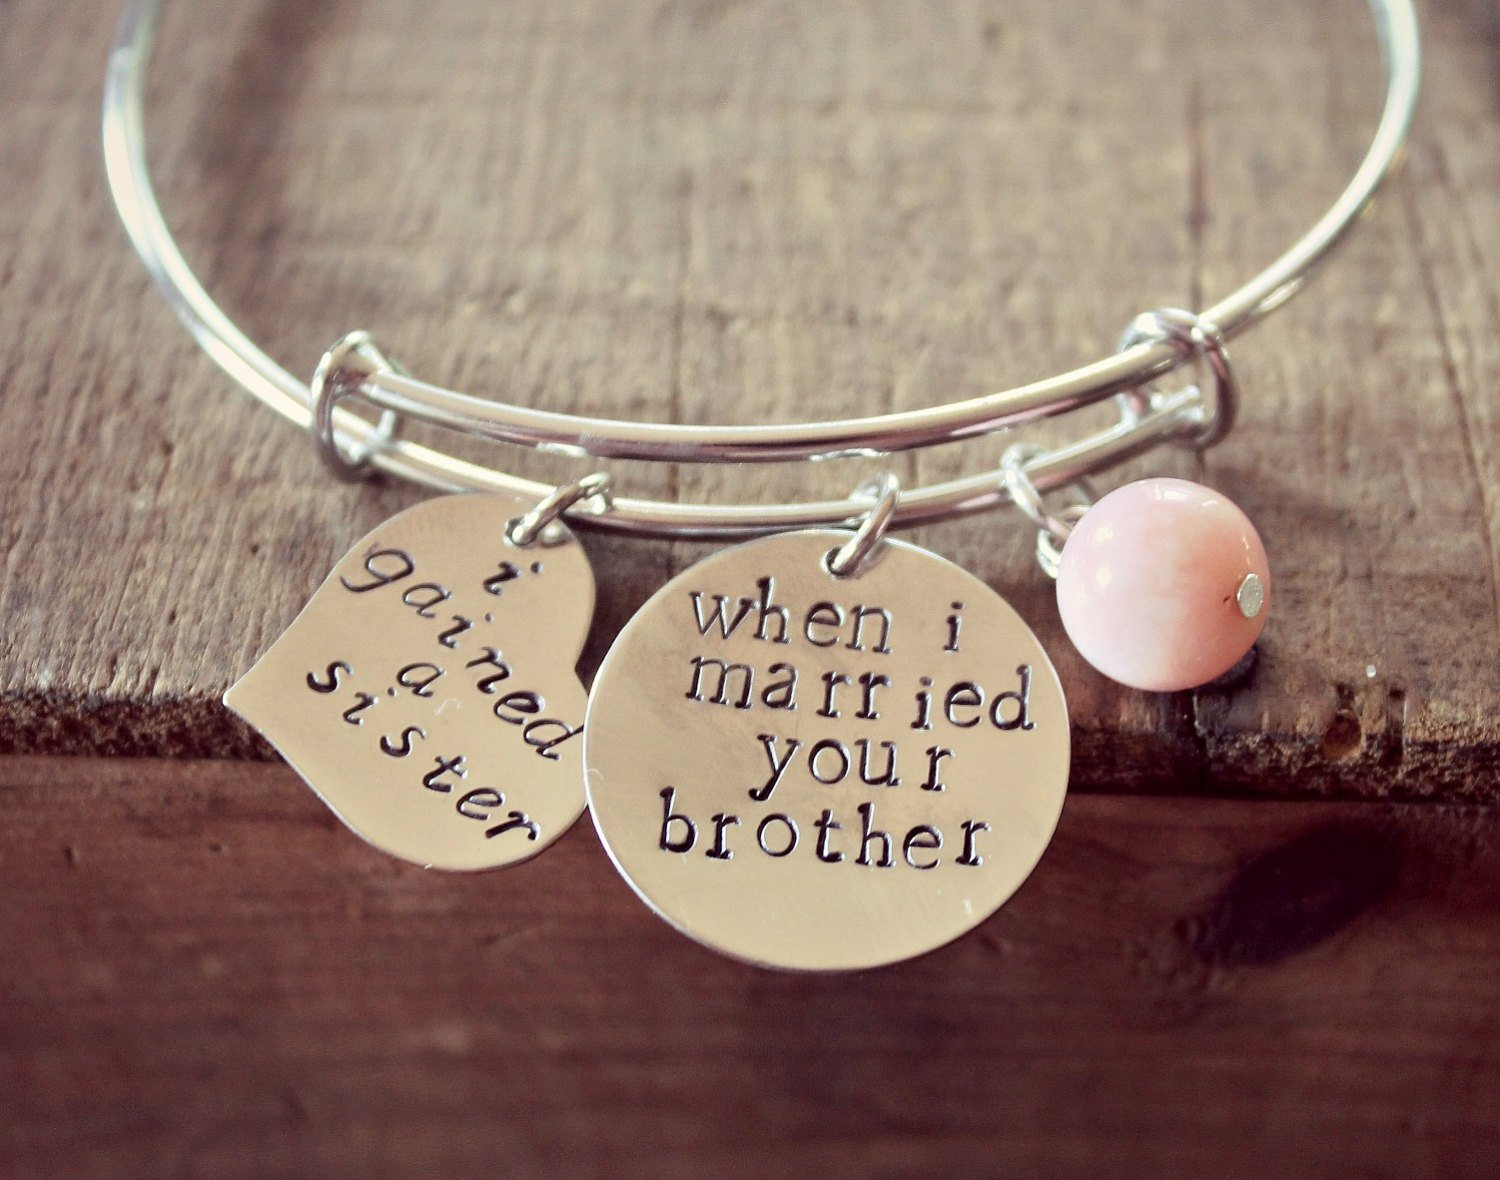 Unique Wedding Gifts For Brother And Sister In Law : Help! Jewelry for Sister-in-Law Bridesmaid Gift? Ask Emmaline ...